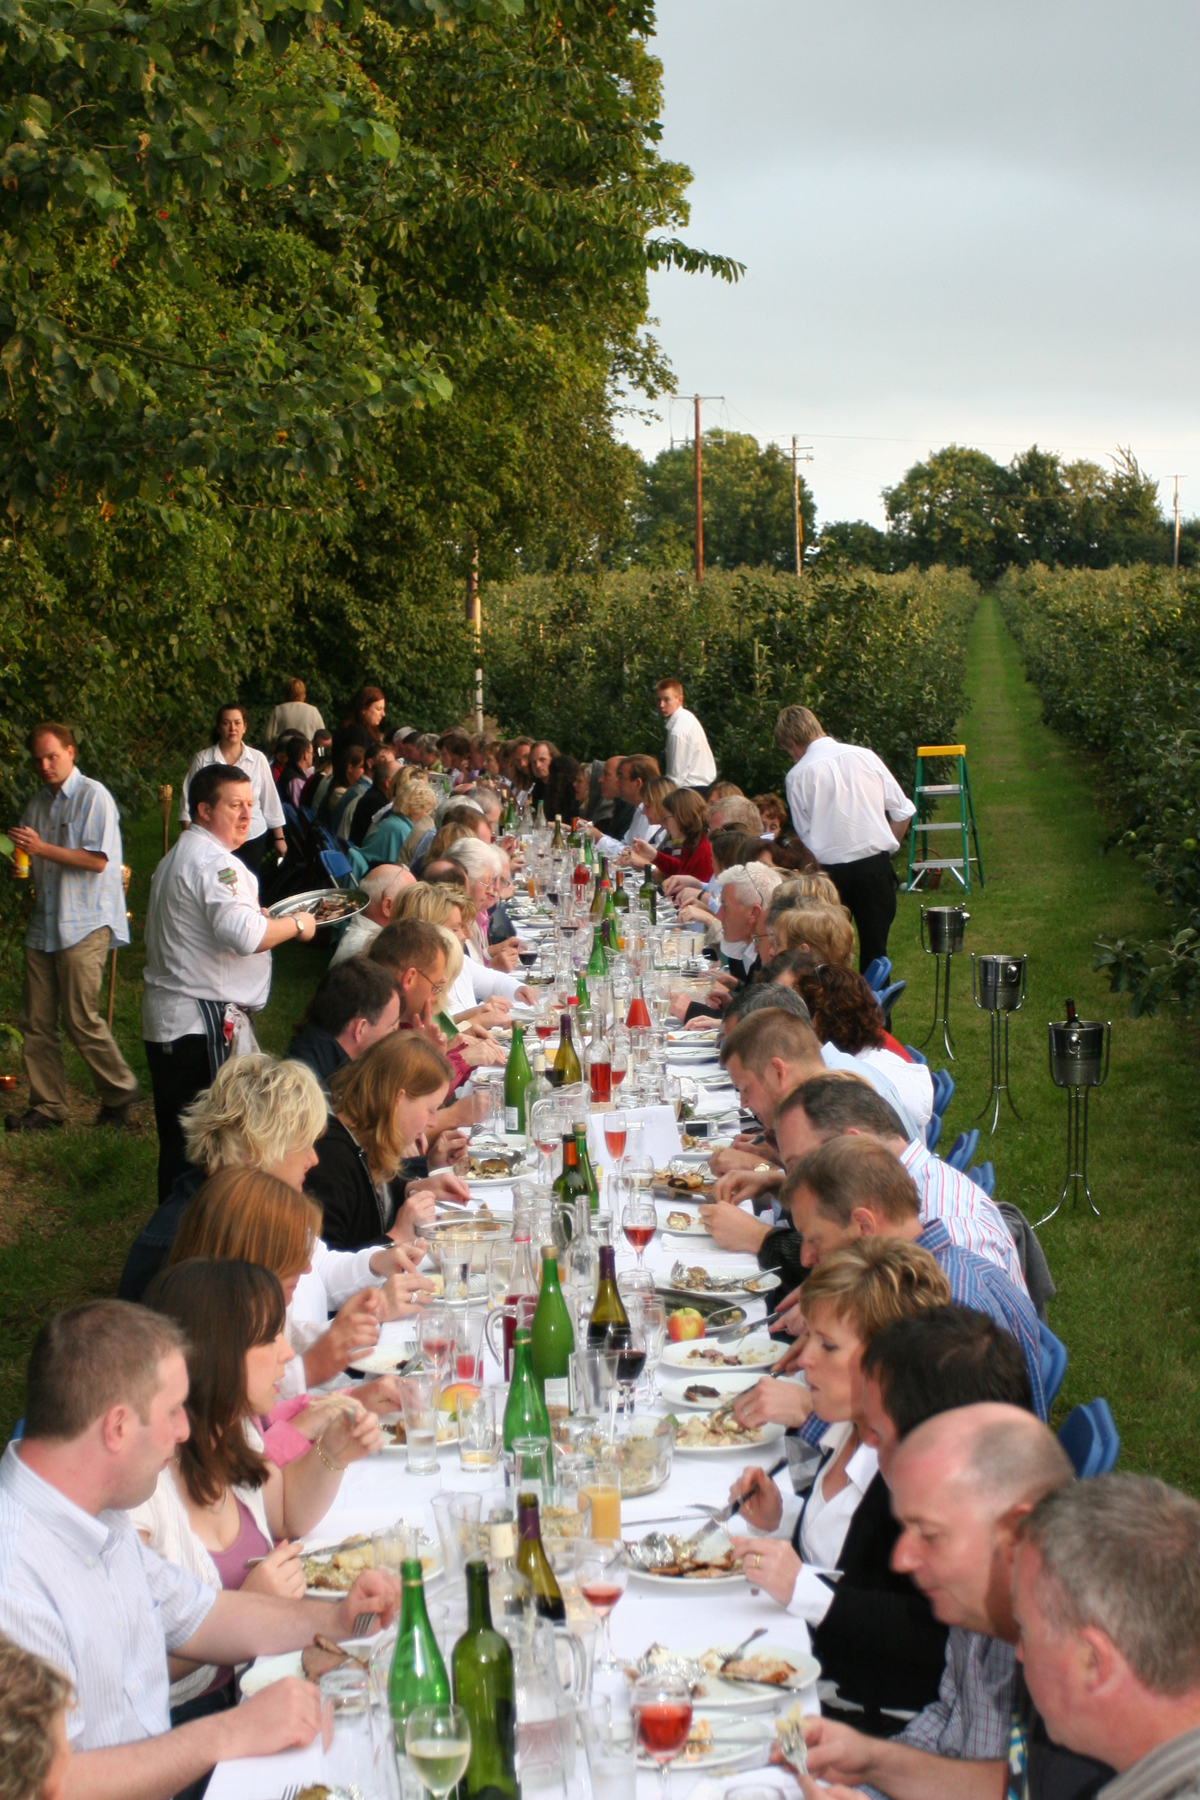 Previous Long Table Dinner at the Apple Farm